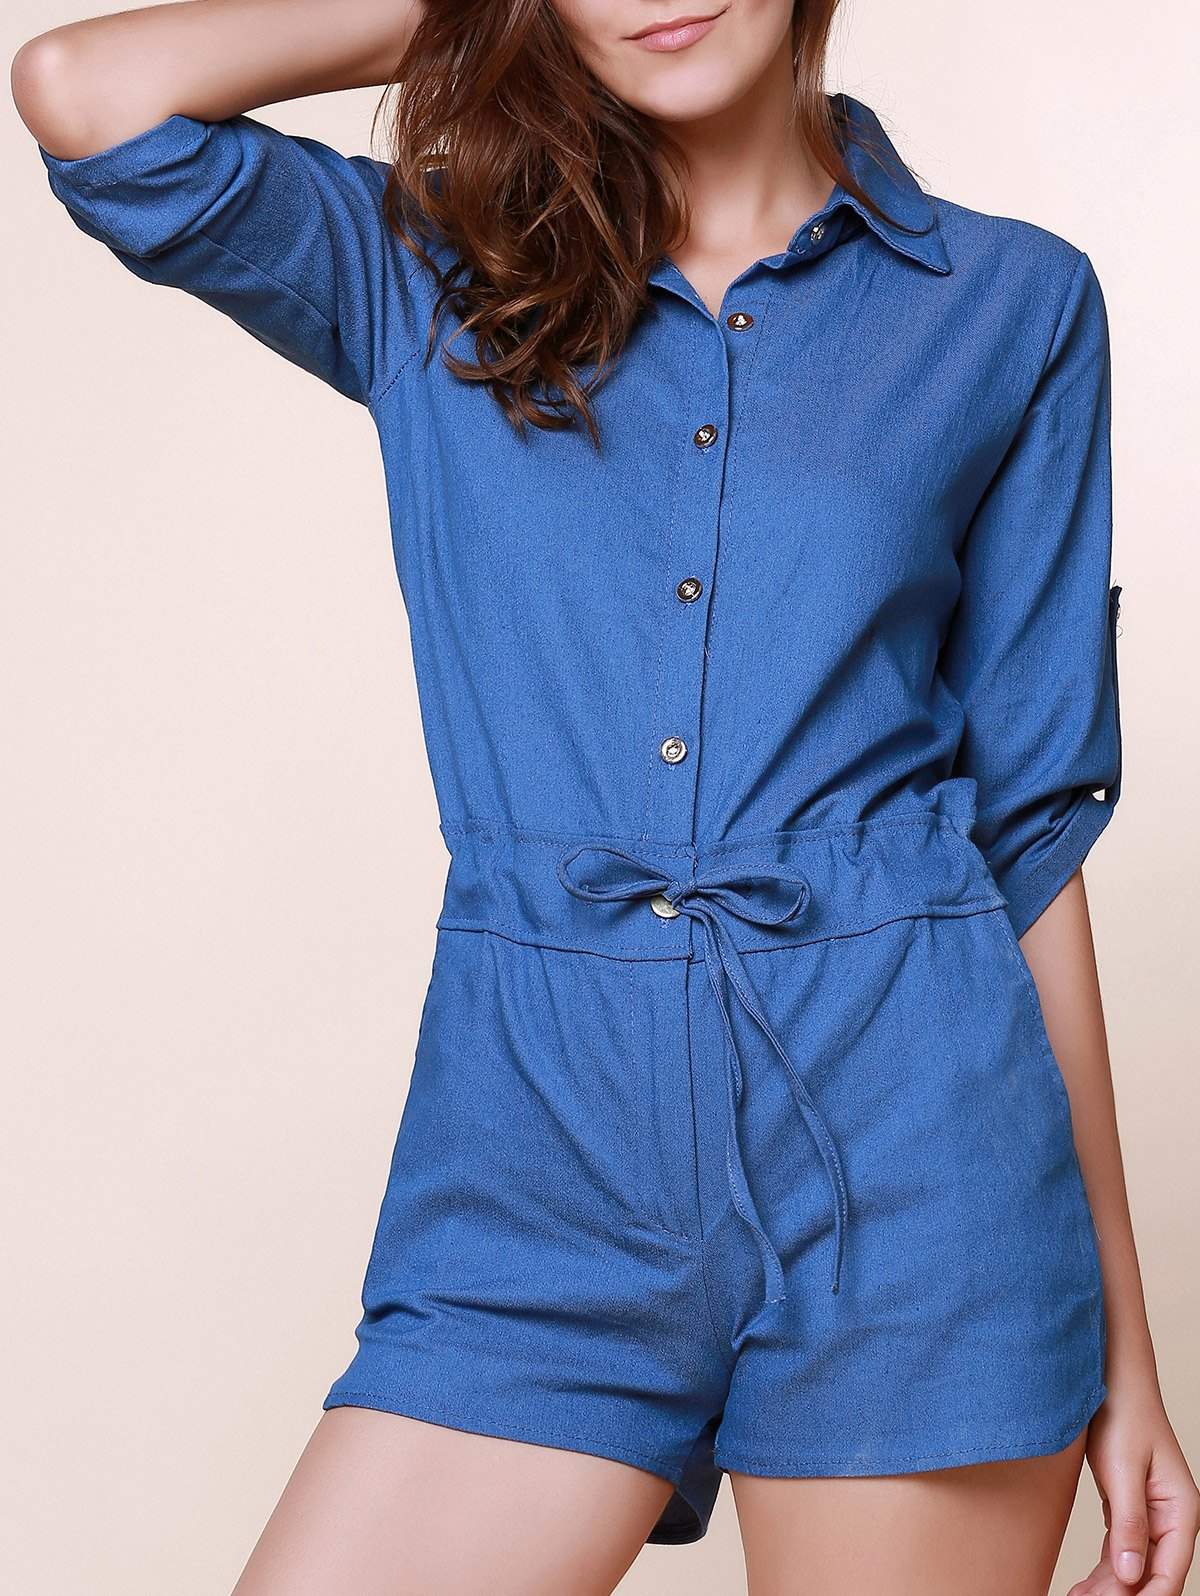 Vintage Shirt Collar Pure Color 3/4 Sleeve Lace-Up Jeans Romper For Women - AS THE PICTURE L